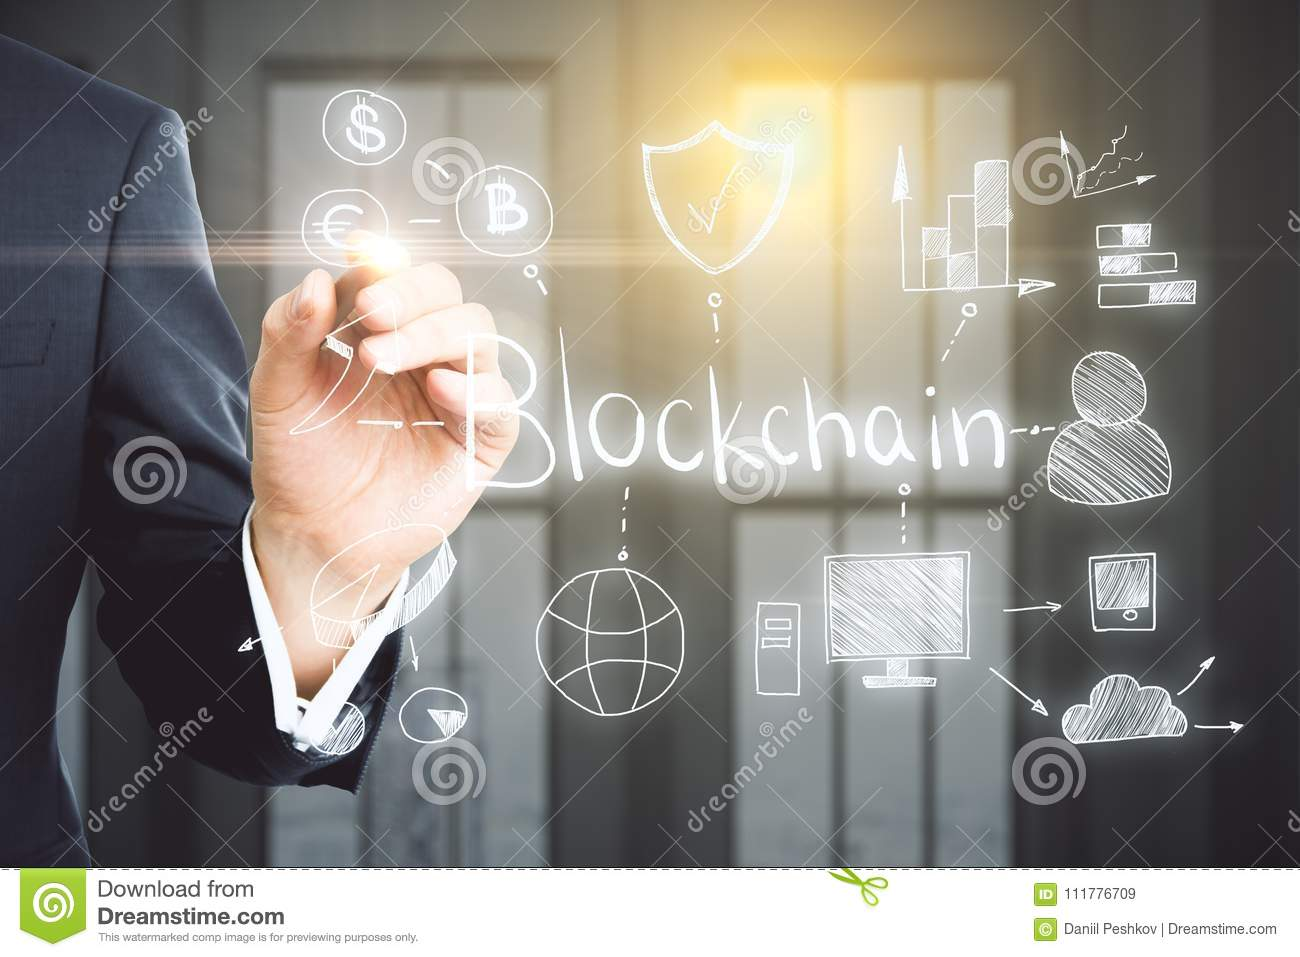 Cryptocurrency and technology concept